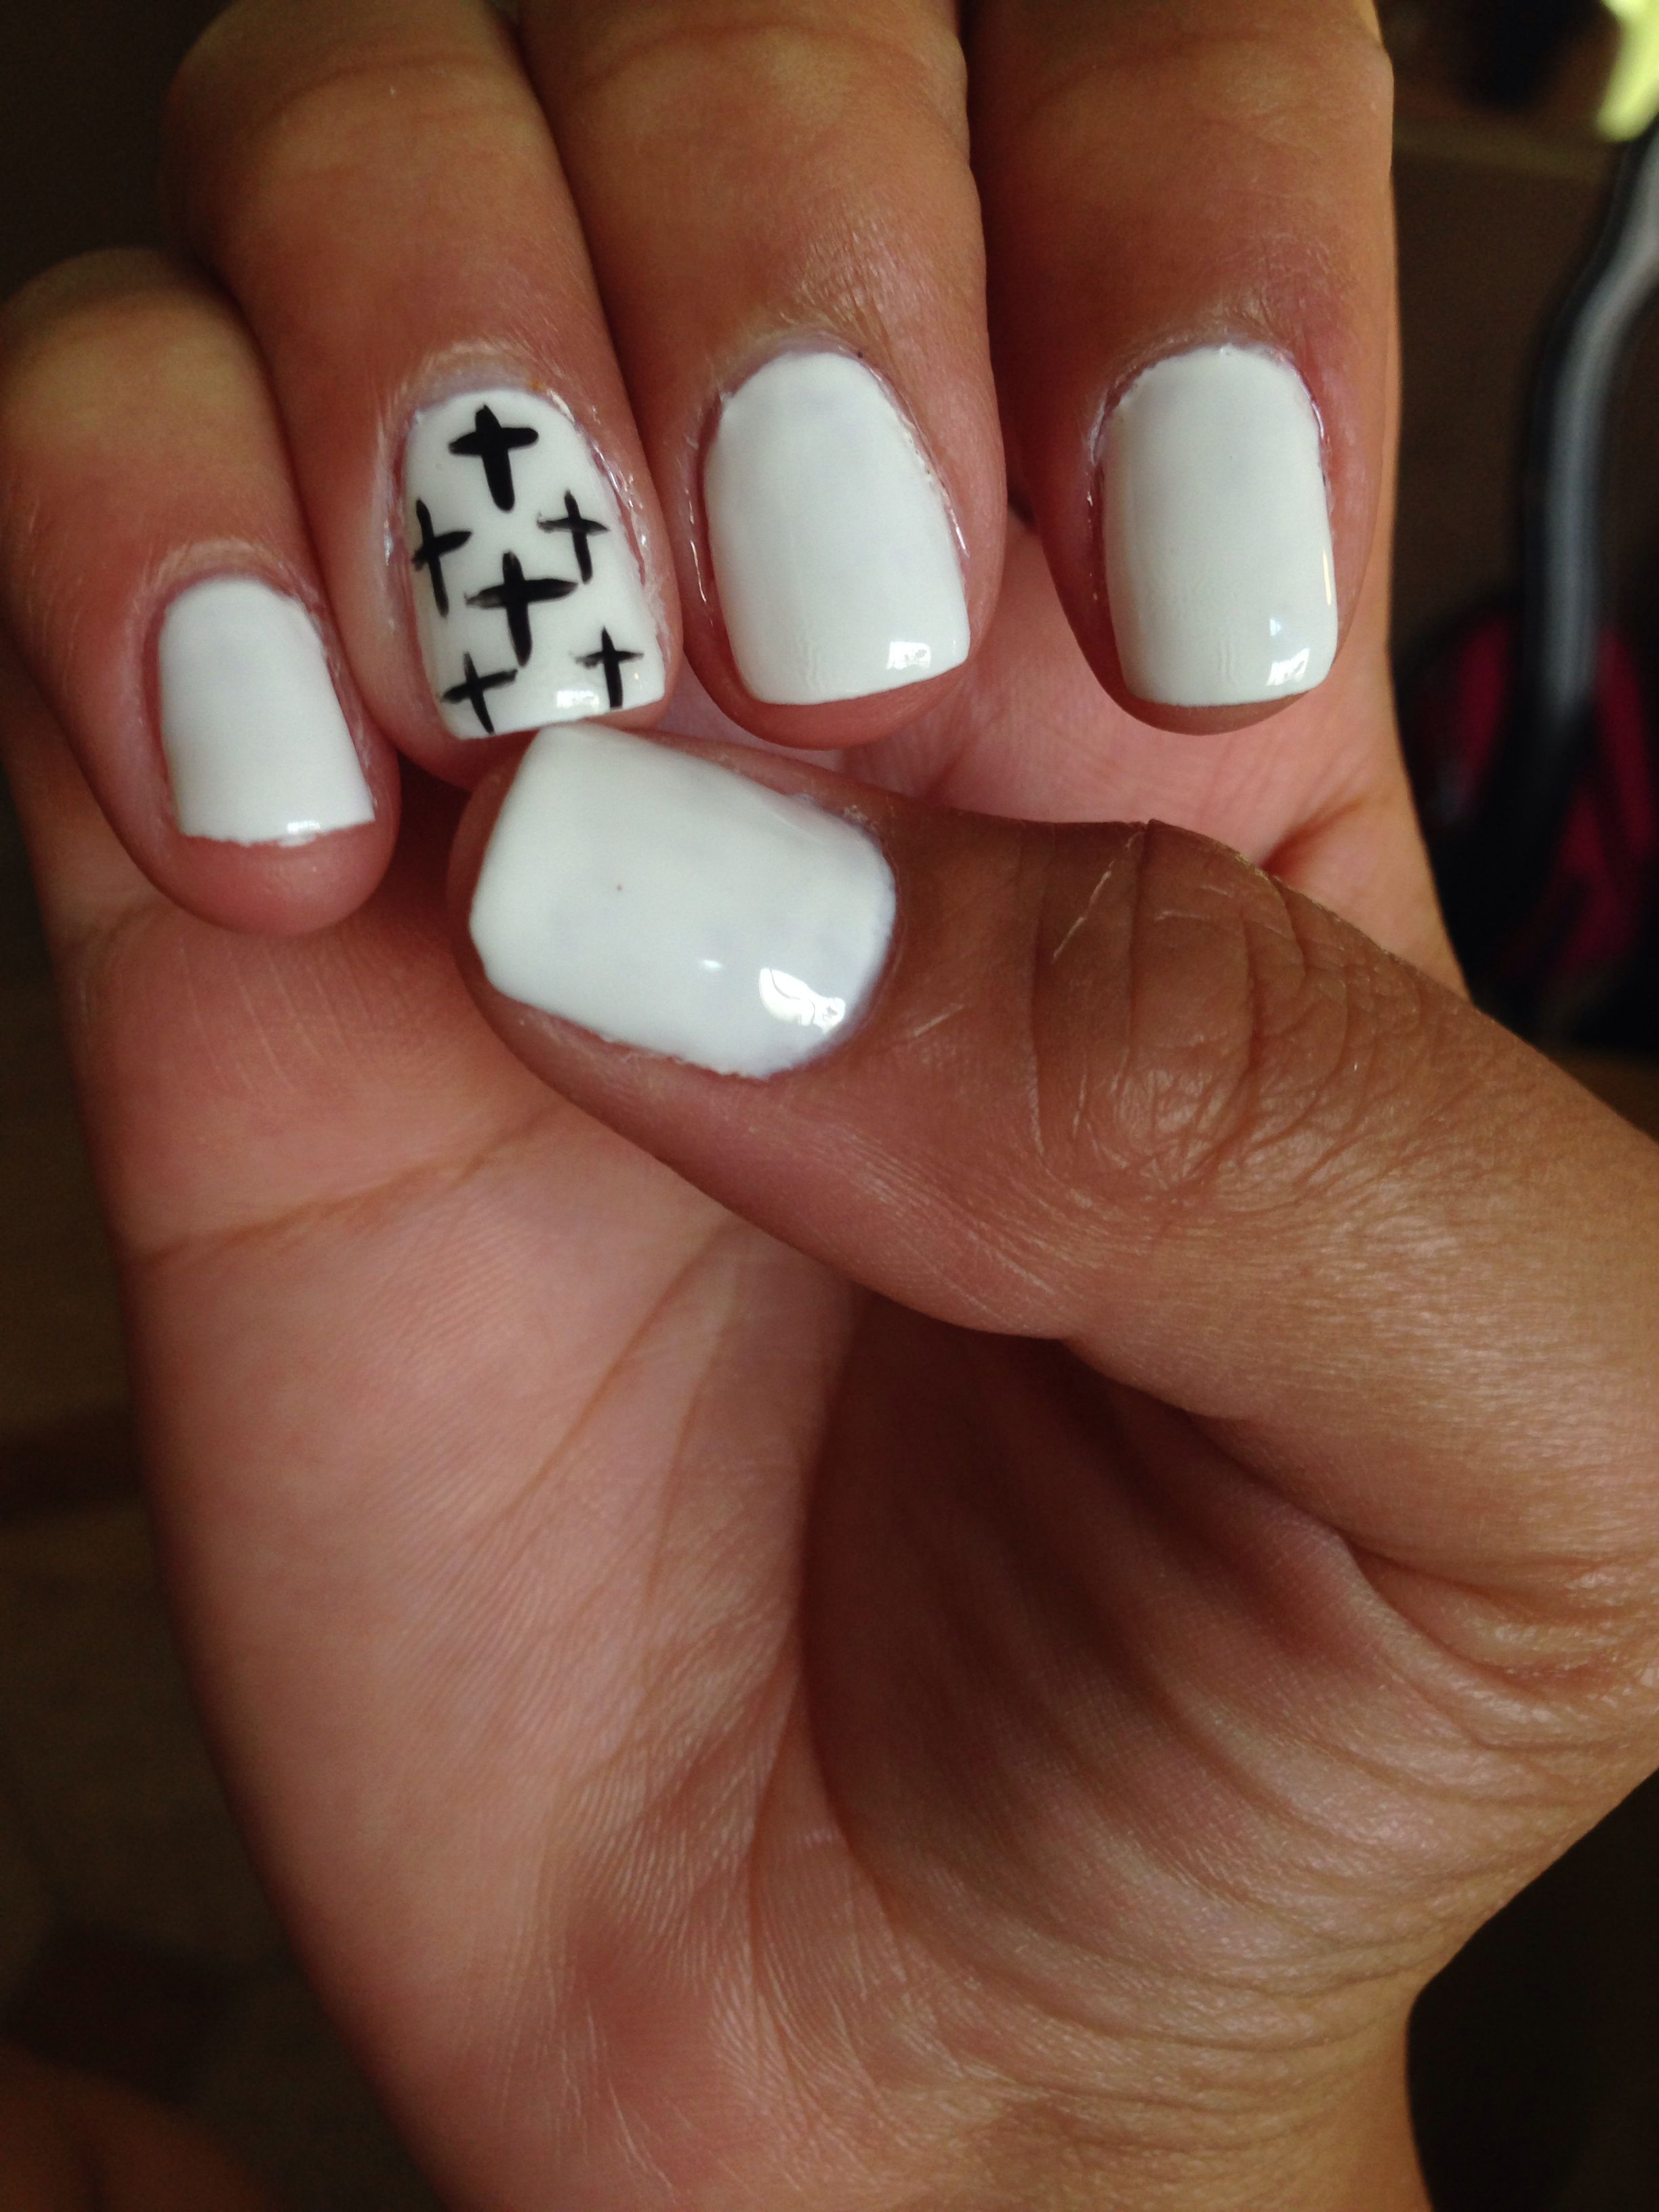 Obsessed with My Easter nails...Good Selection. #purewhite #crossAction